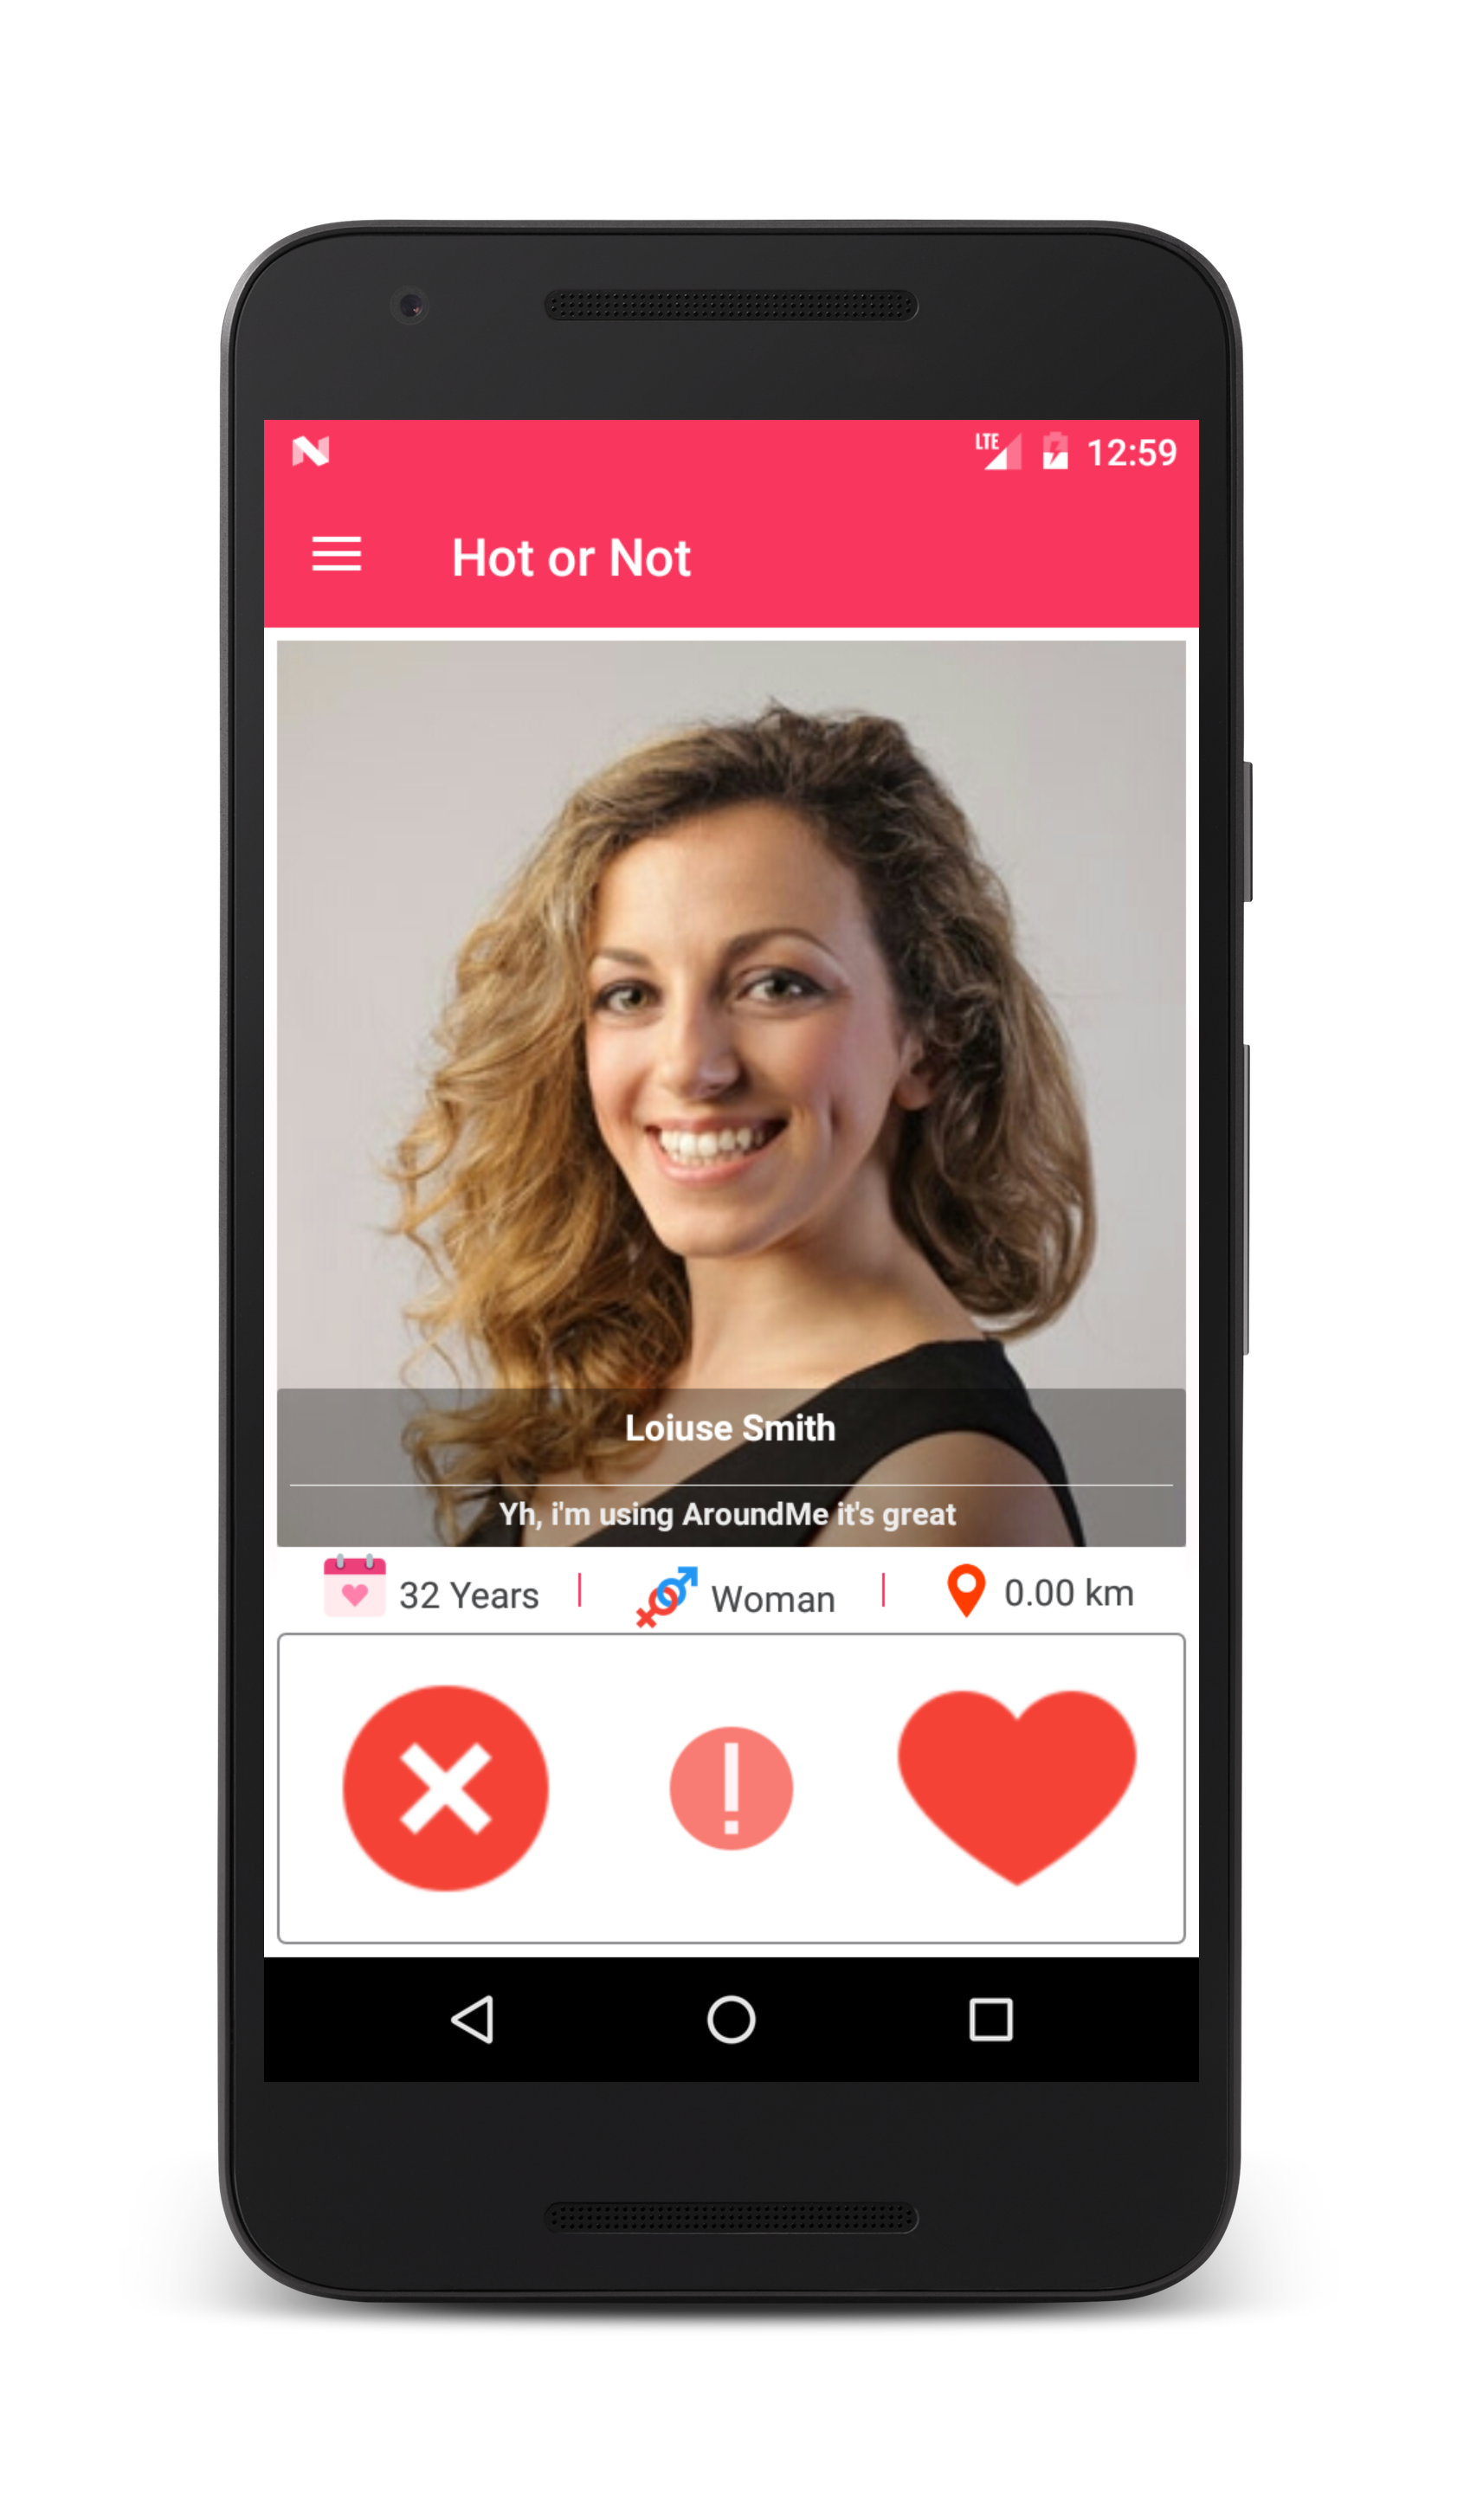 hot dating apps The grade is a female-friendly mobile dating application that holds users accountable for their behavior by using a proprietary algorithm that assigns letter grades to users ranging from a+ to f based on profile quality, responsiveness, and message quality.